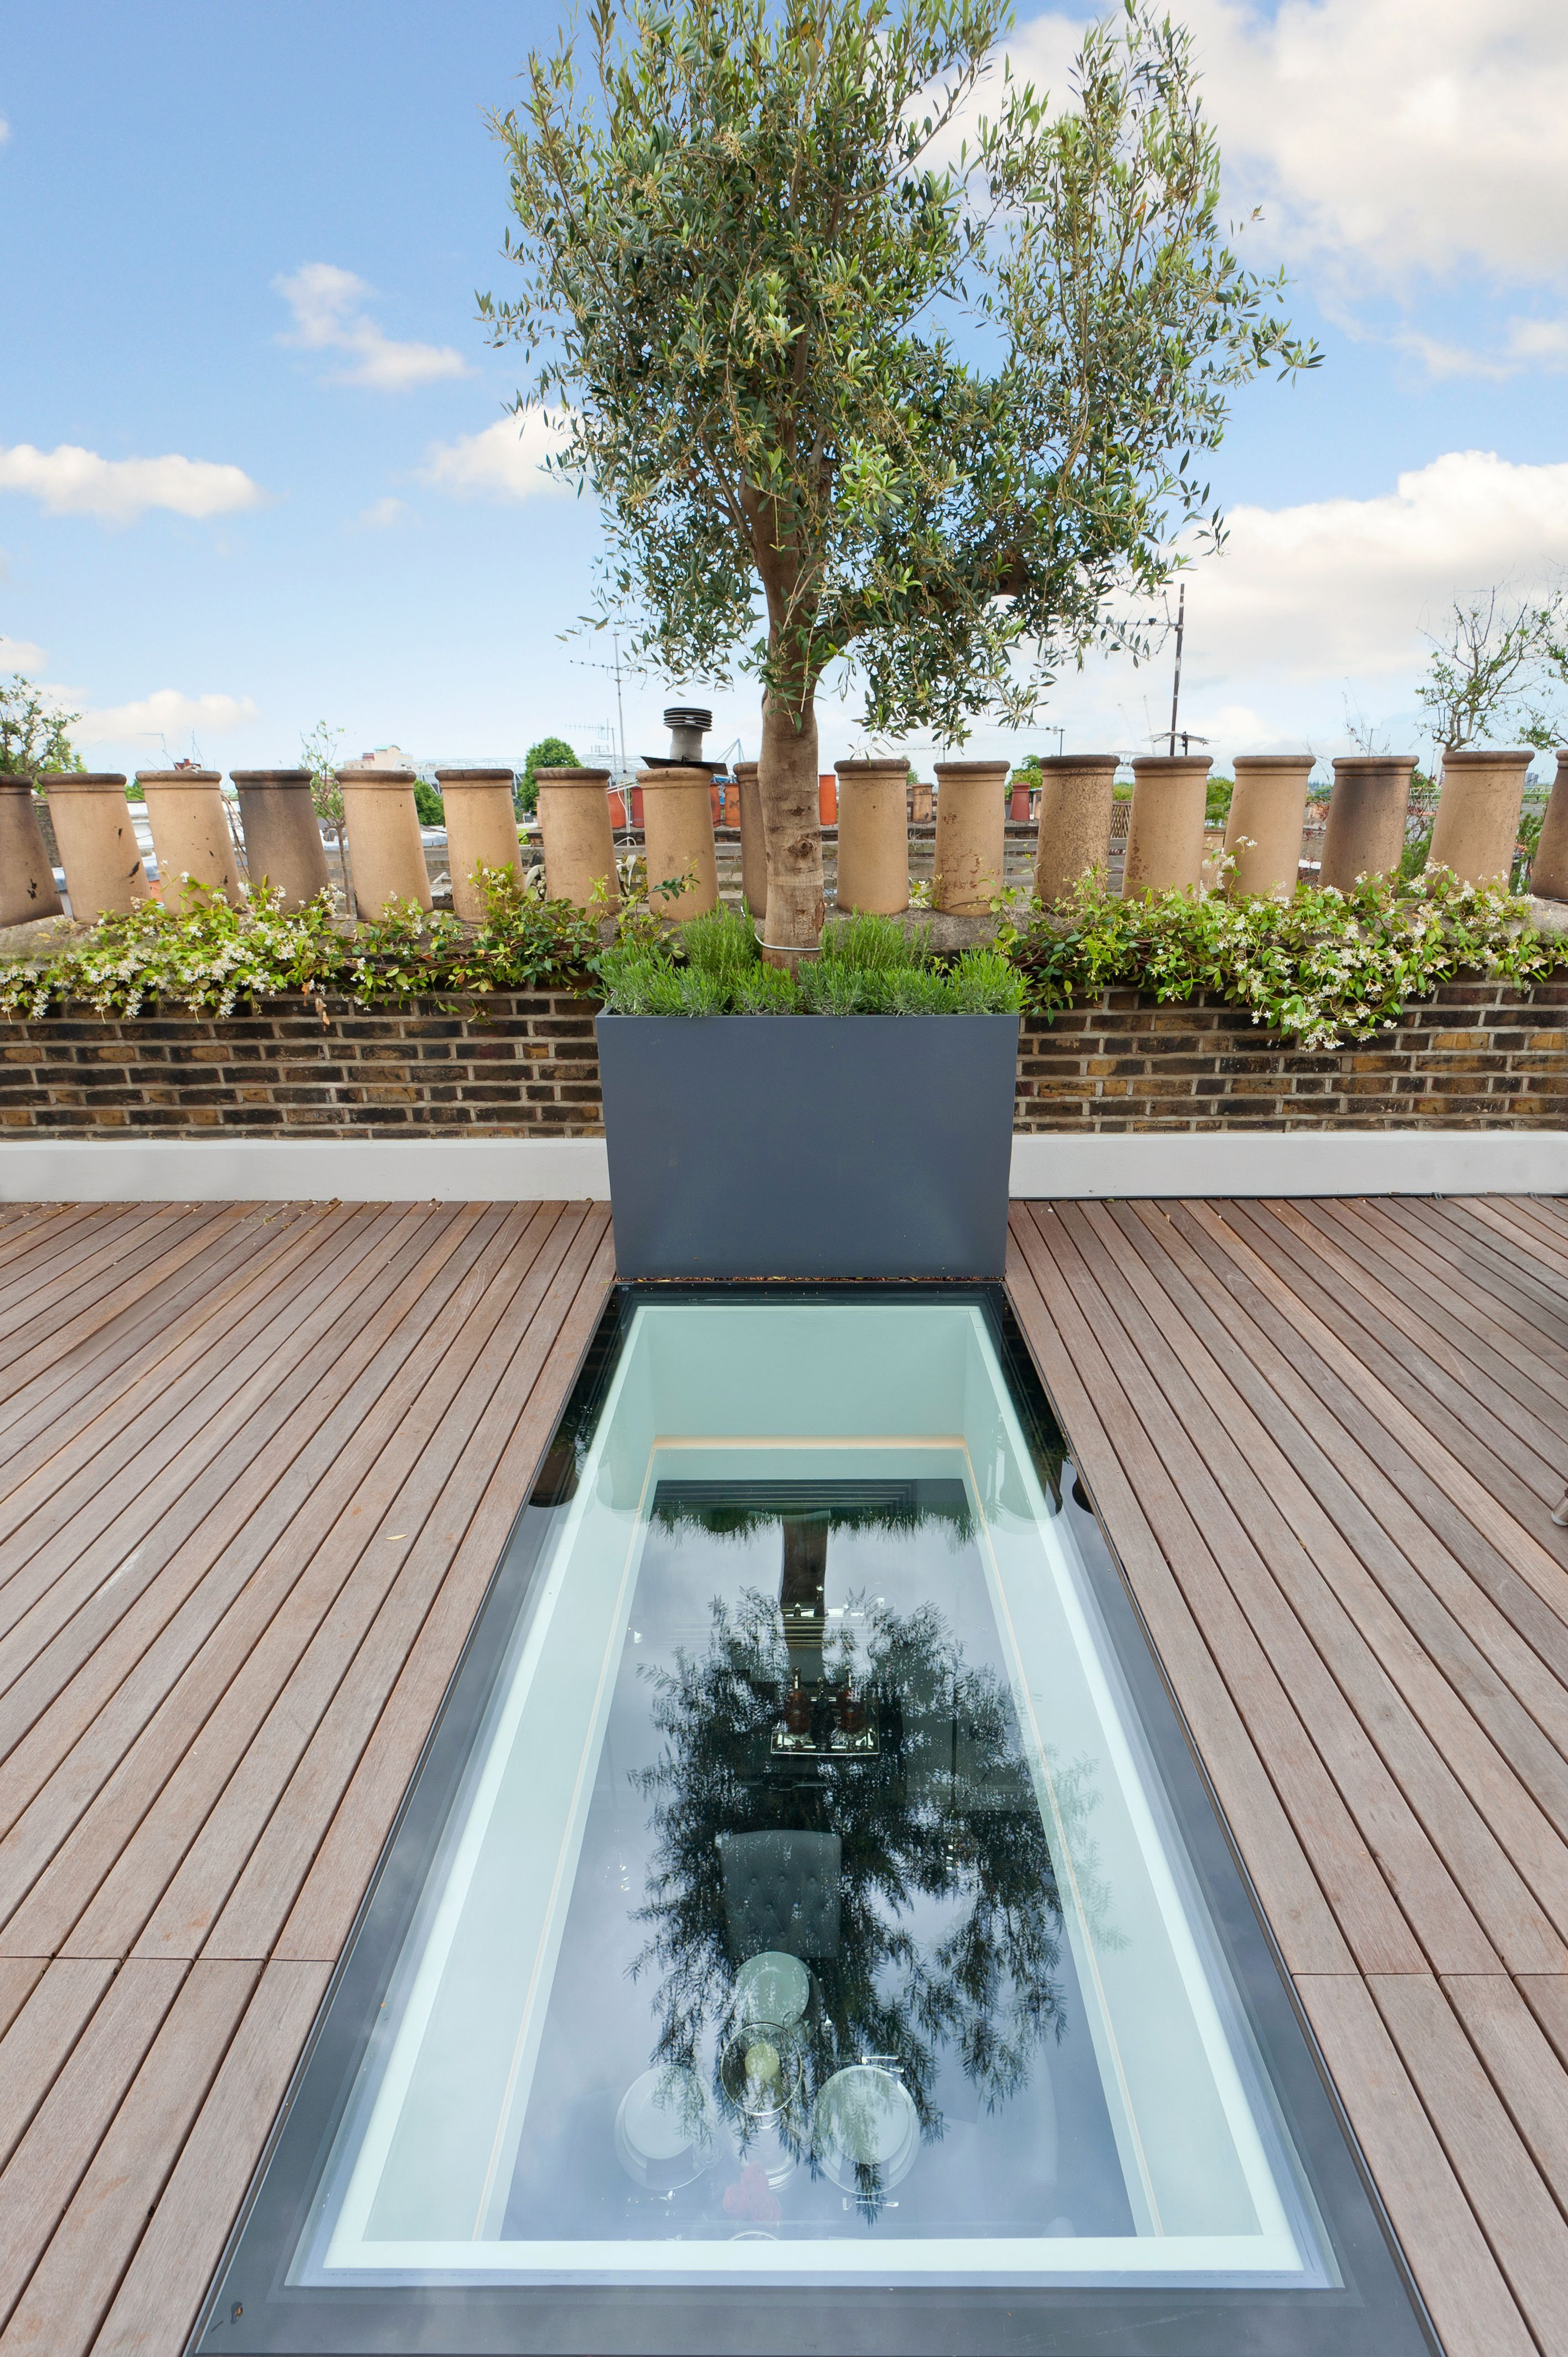 3 Keen Tips And Tricks Exposed Concrete Roofing Exposed Concrete Roofing Modern Roofing Dreams Roofing Deck Tiny Rooftop Terrace Design Roof Light Glass Roof